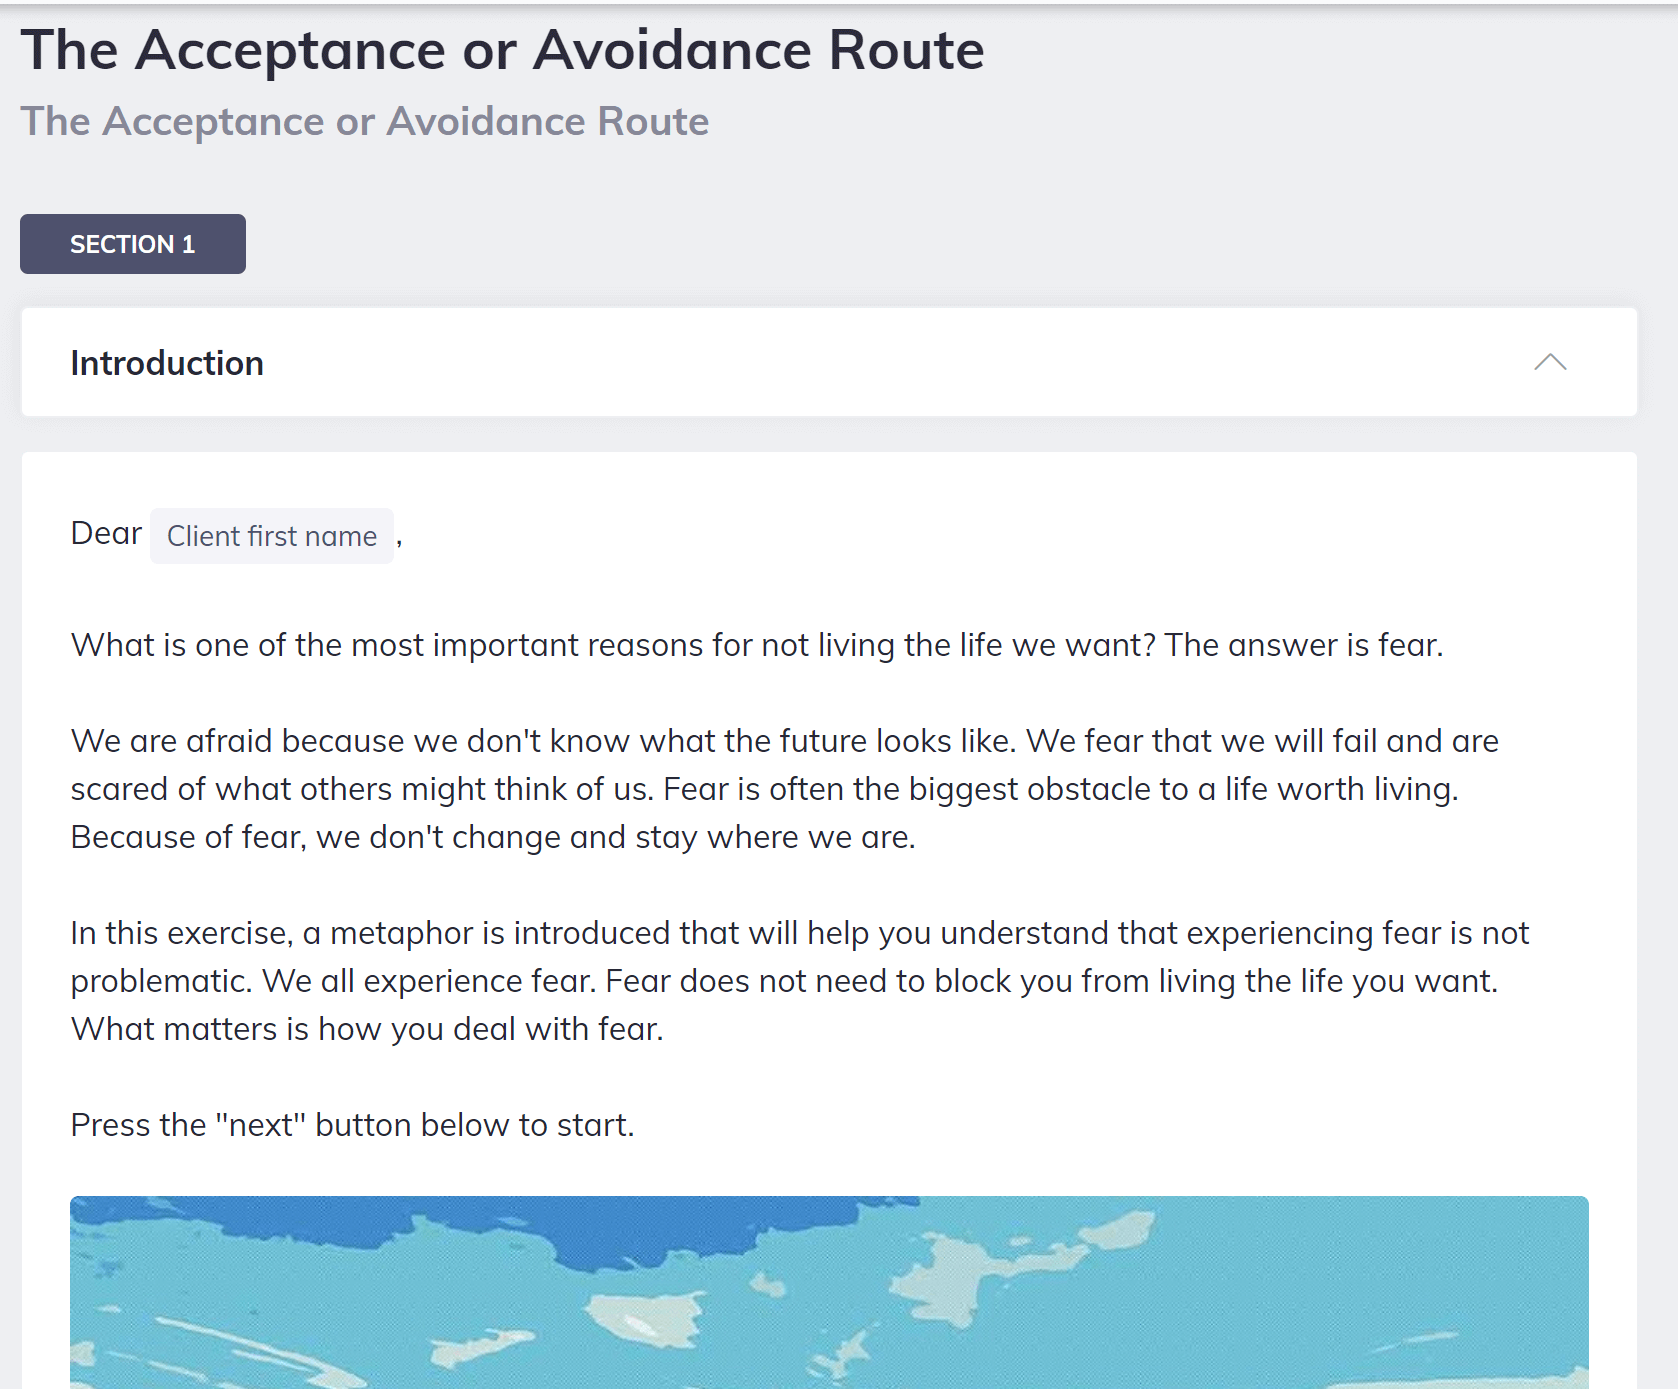 The Acceptance or Avoidance Route Confidence Coaching